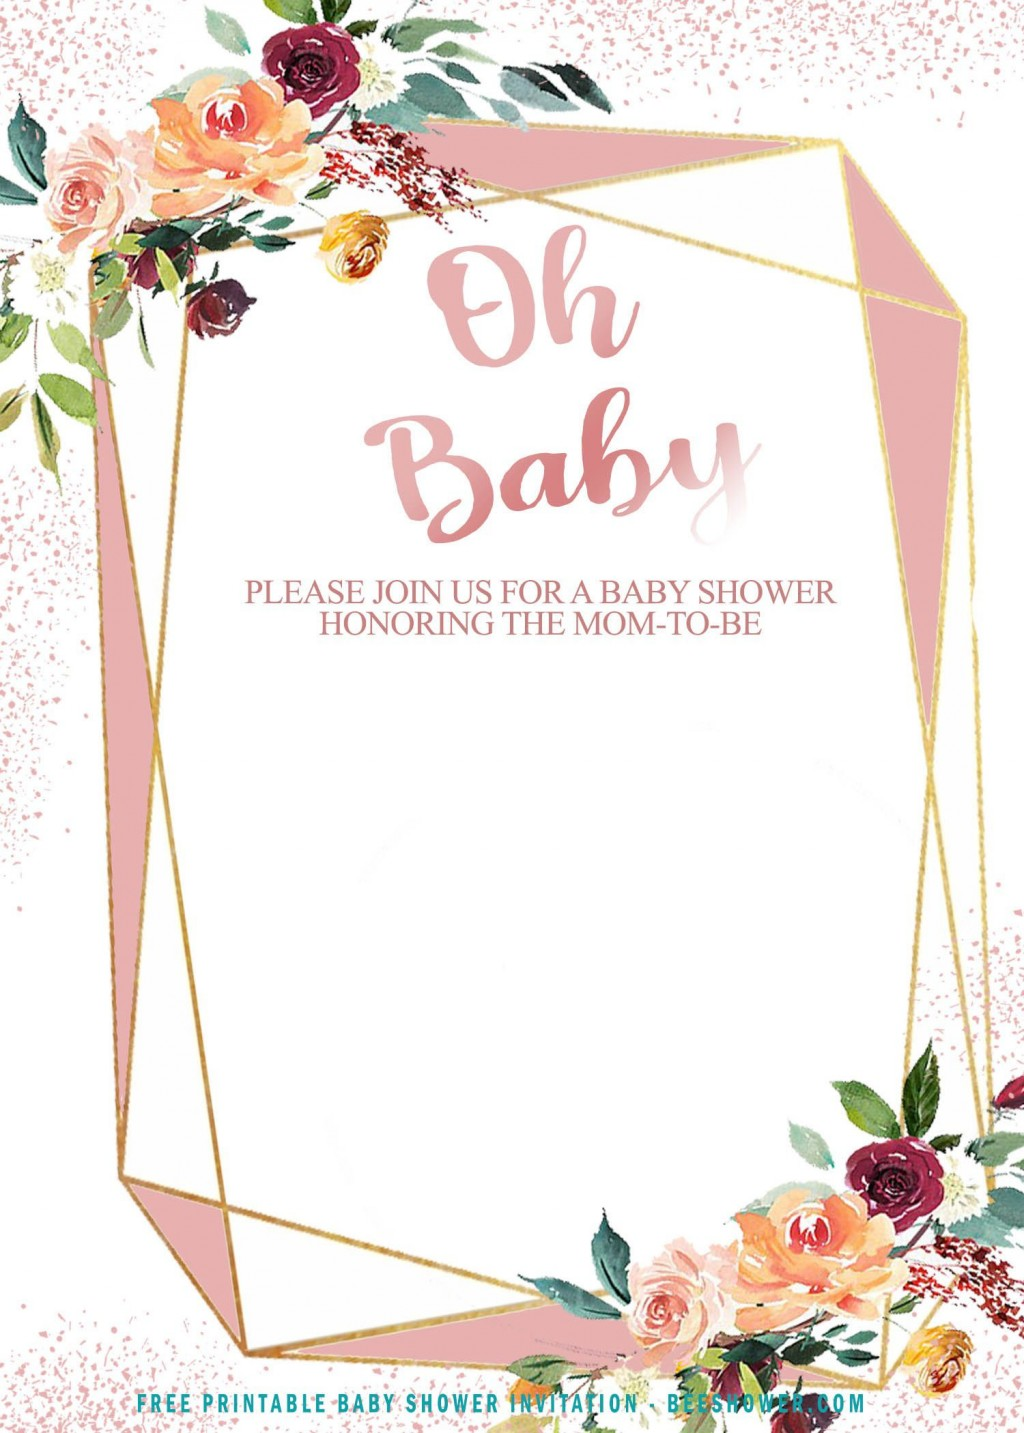 008 Beautiful Baby Shower Invite Template Word Highest Clarity  Invitation Wording Sample Free ExampleLarge